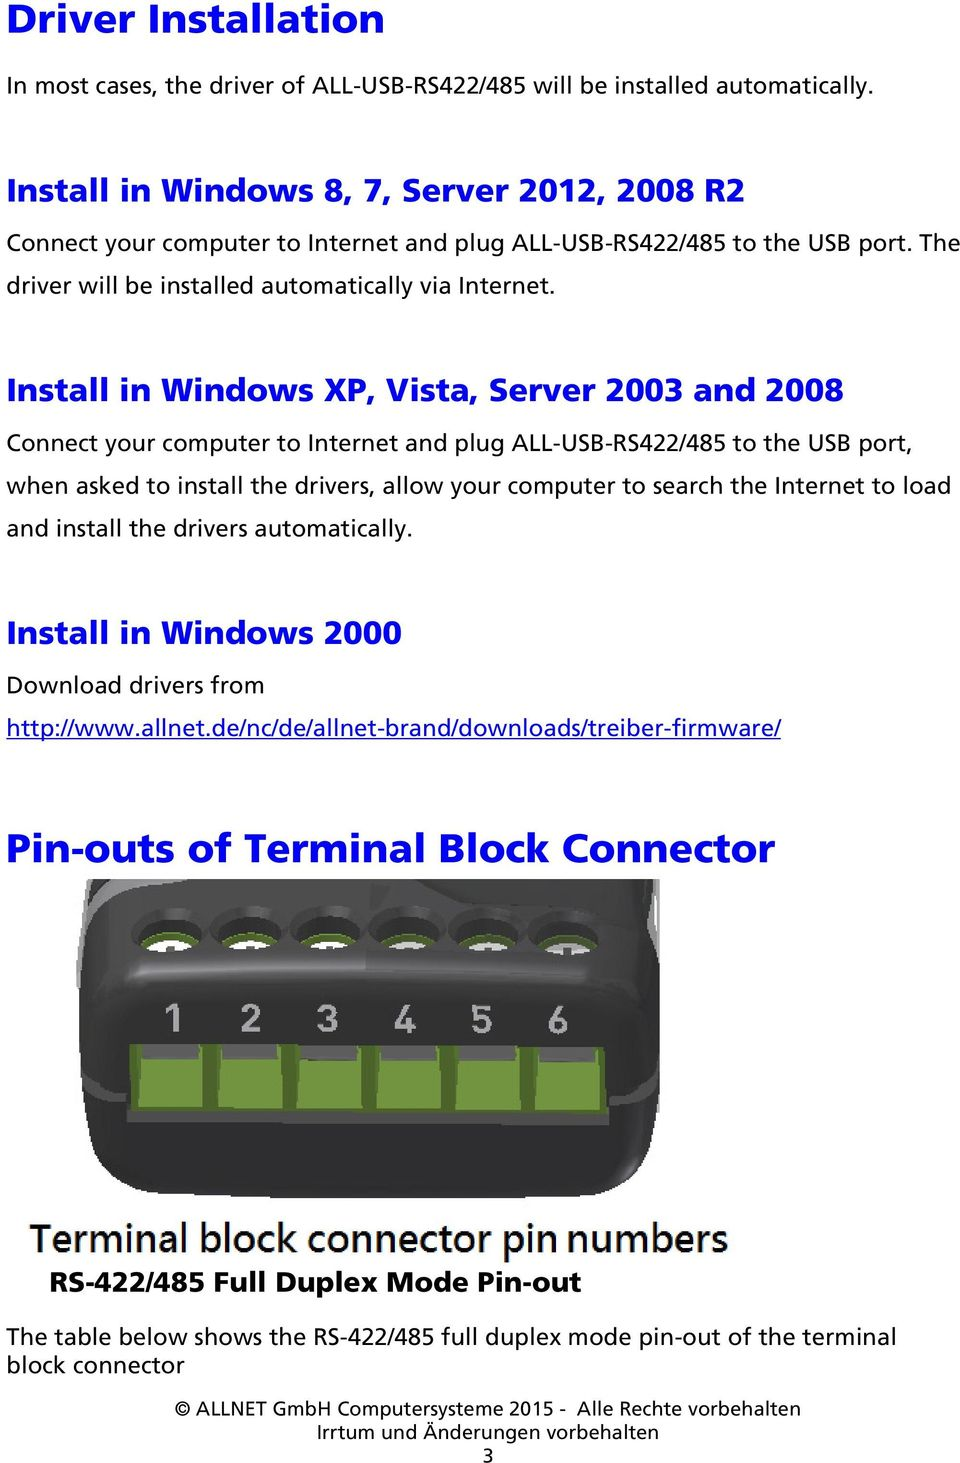 Install in Windows XP, Vista, Server 2003 and 2008 Connect your computer to Internet and plug ALL-USB-RS422/485 to the USB port, when asked to install the drivers, allow your computer to search the